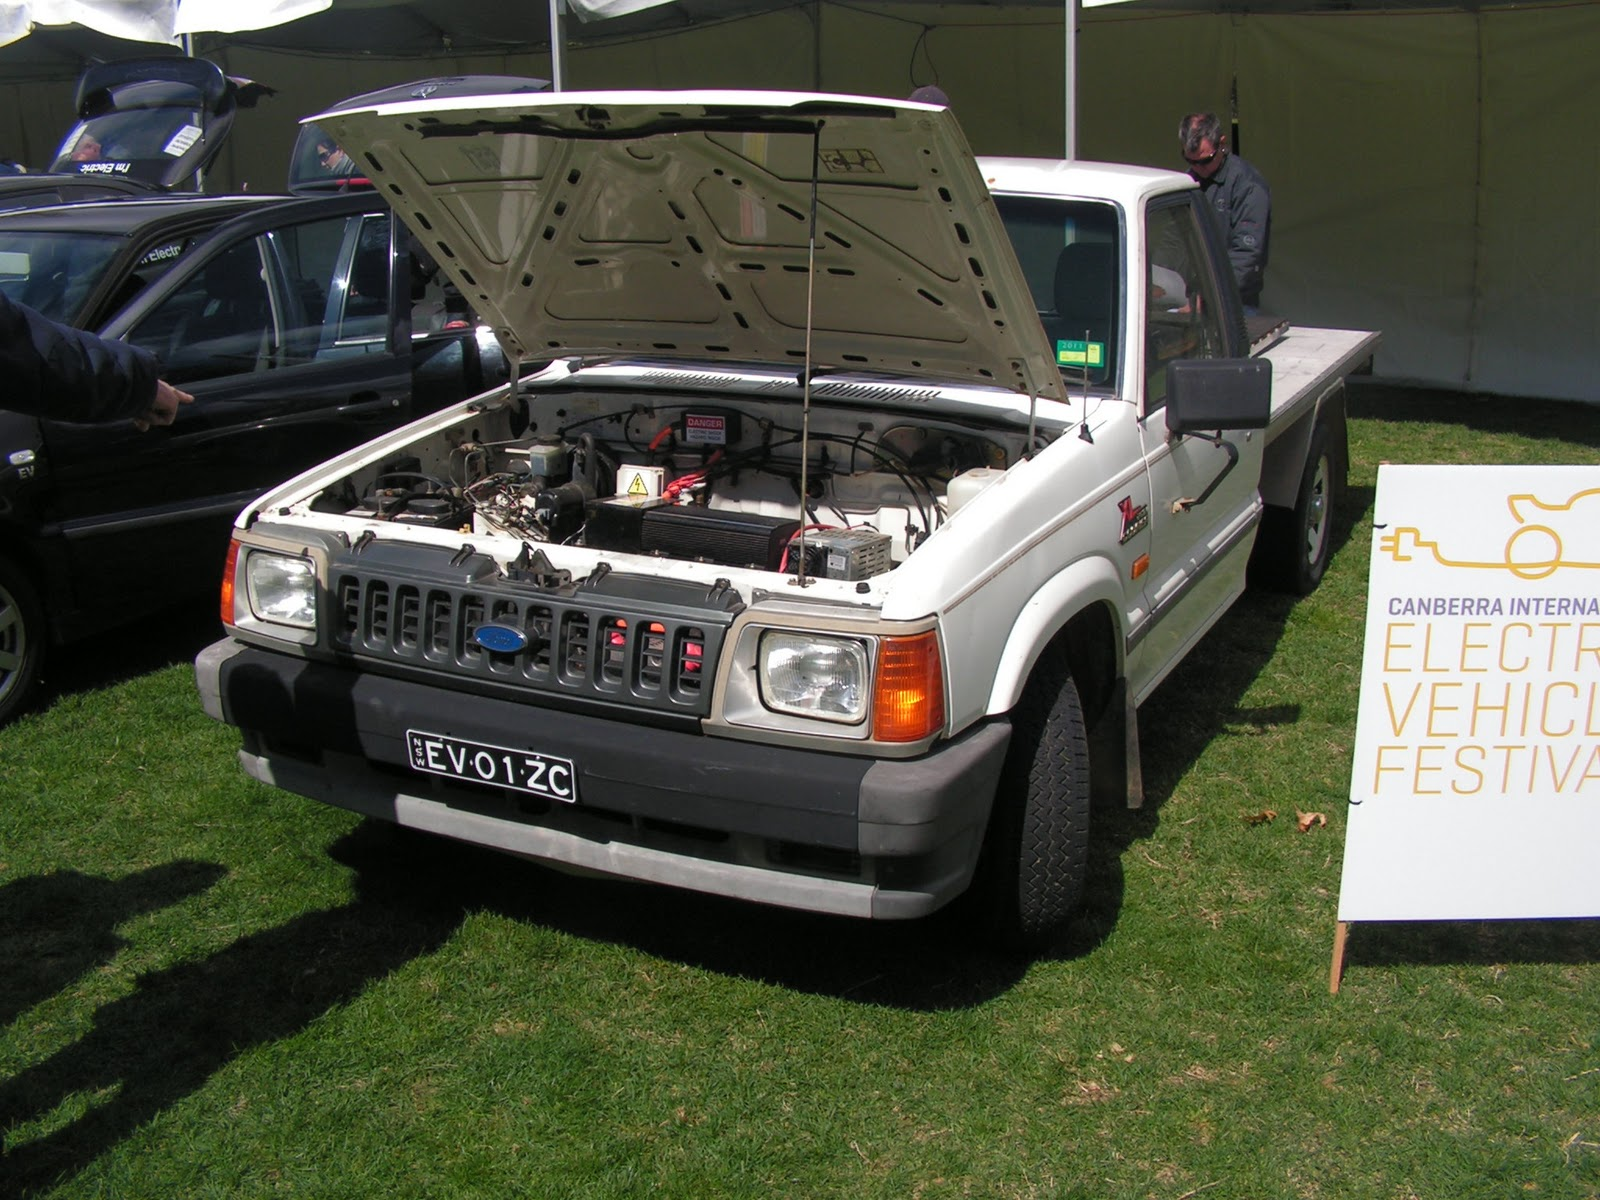 Lets Begin Our Wander Around The 2017 Canberra International Electric Vehicle Festival Beginning With A Small Display Of Homebuilt Cars And Light